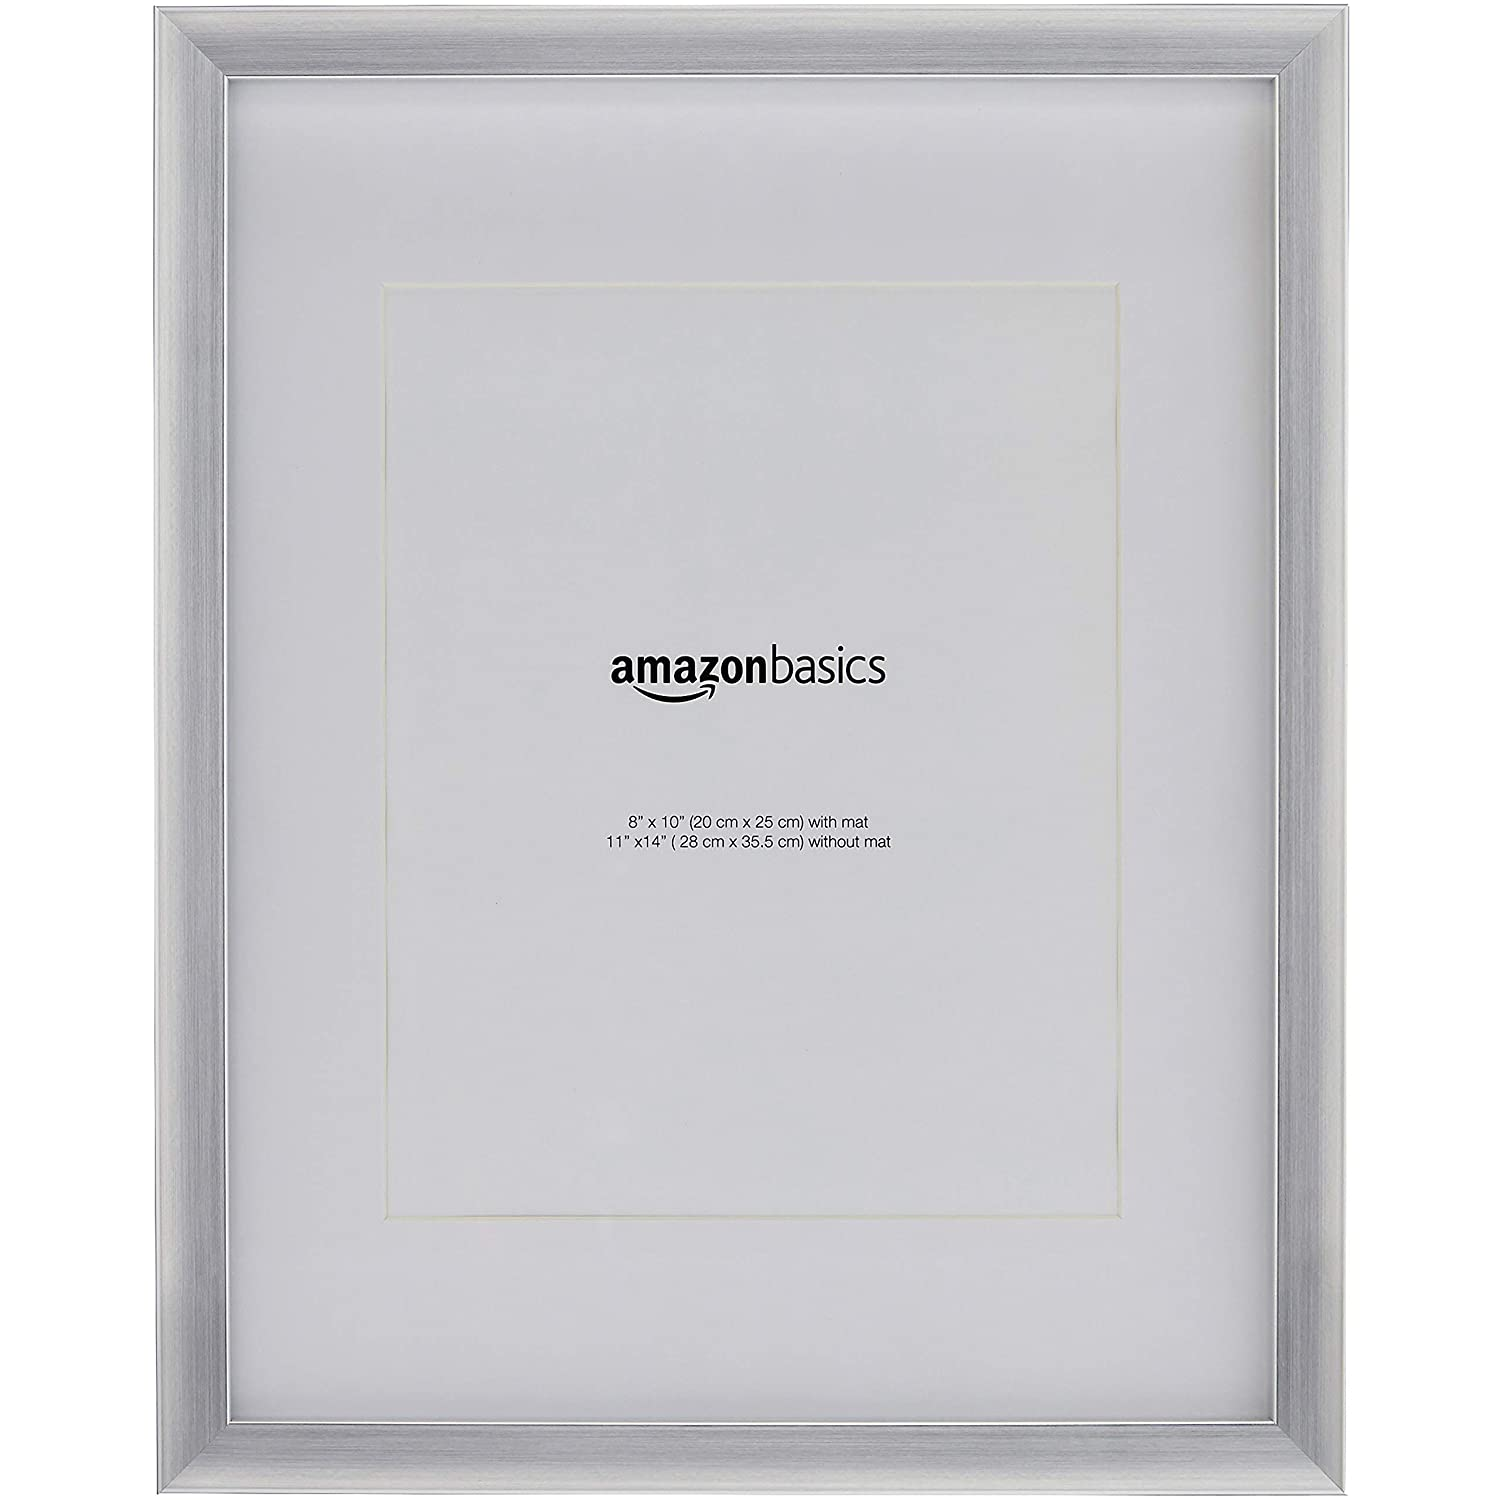 "AmazonBasics Photo Frame with Mat - 11"" x 14"" matted to 8"" x 10"", Nickel, 2-Pack"